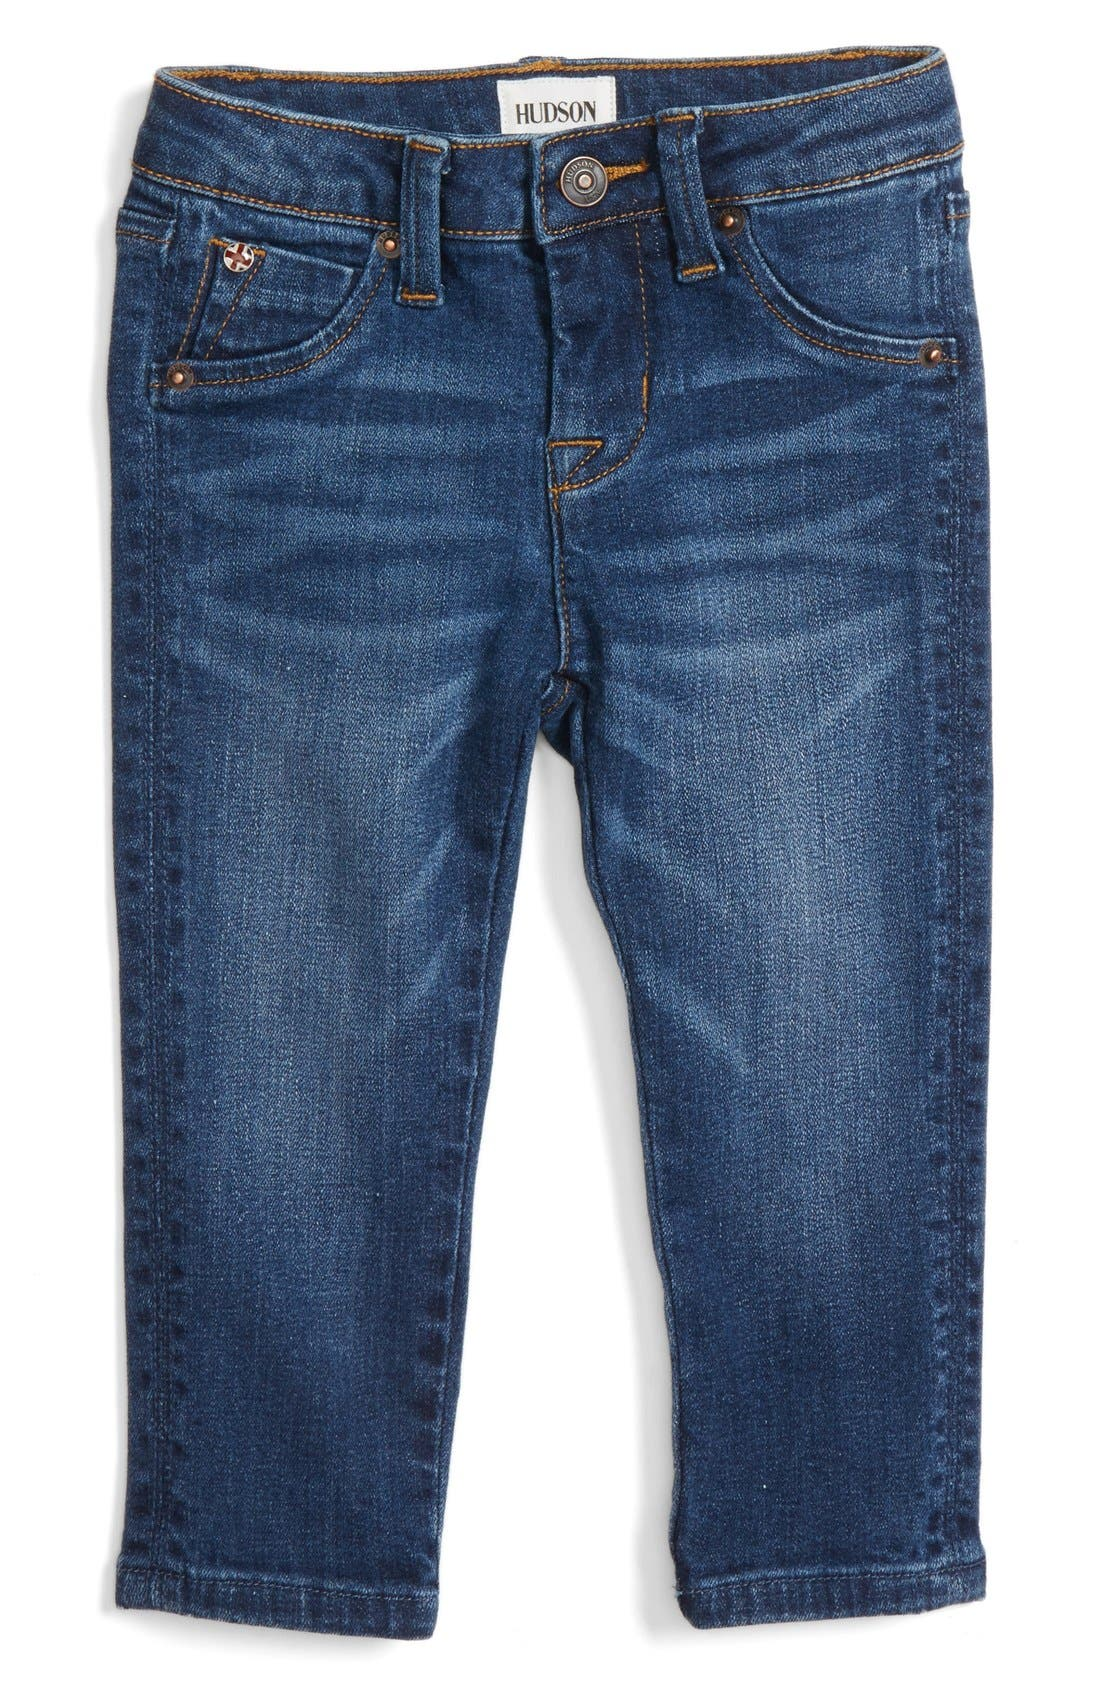 Alternate Image 1 Selected - Hudson 'Collin' Skinny Jeans (Baby Girls)